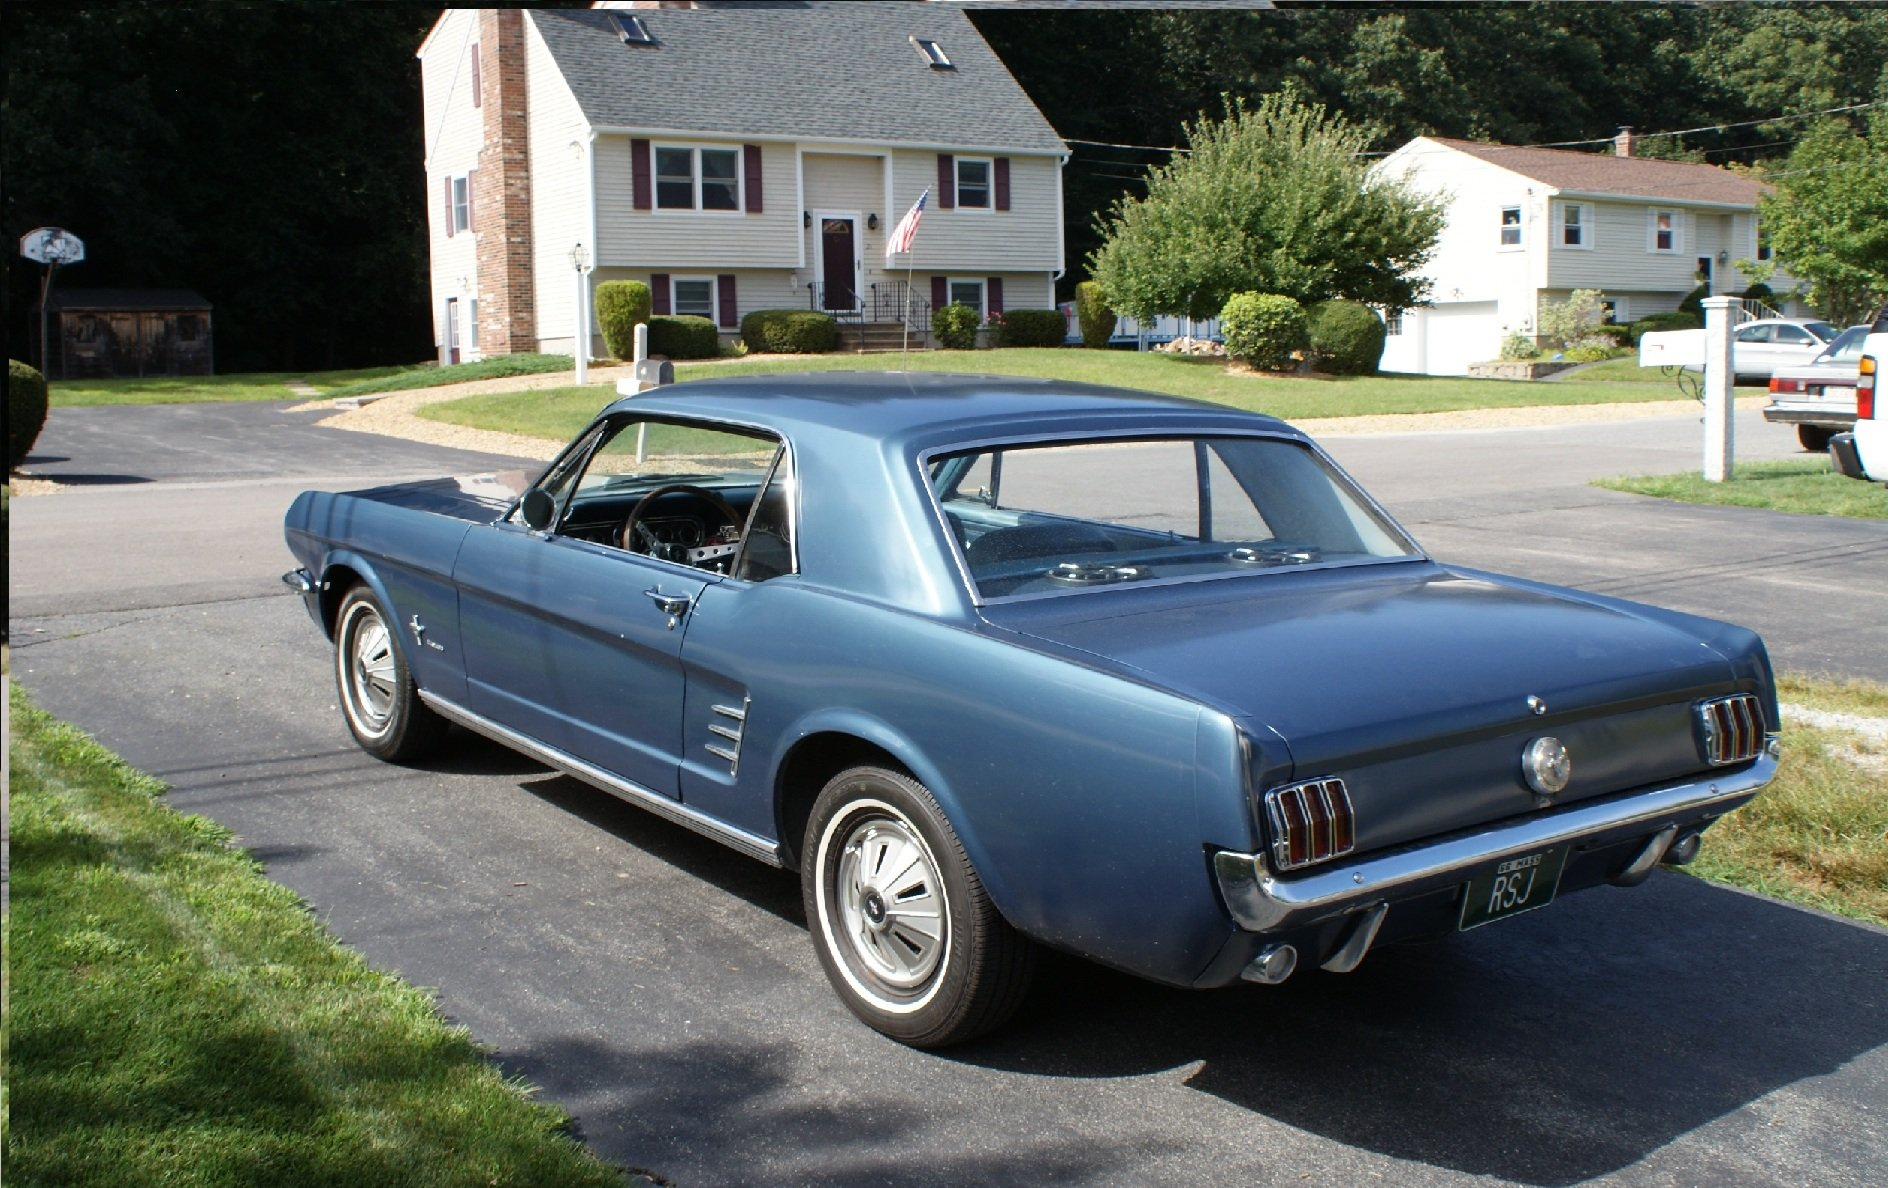 Forum Fix: Leaky Windshield on a '66 Mustang